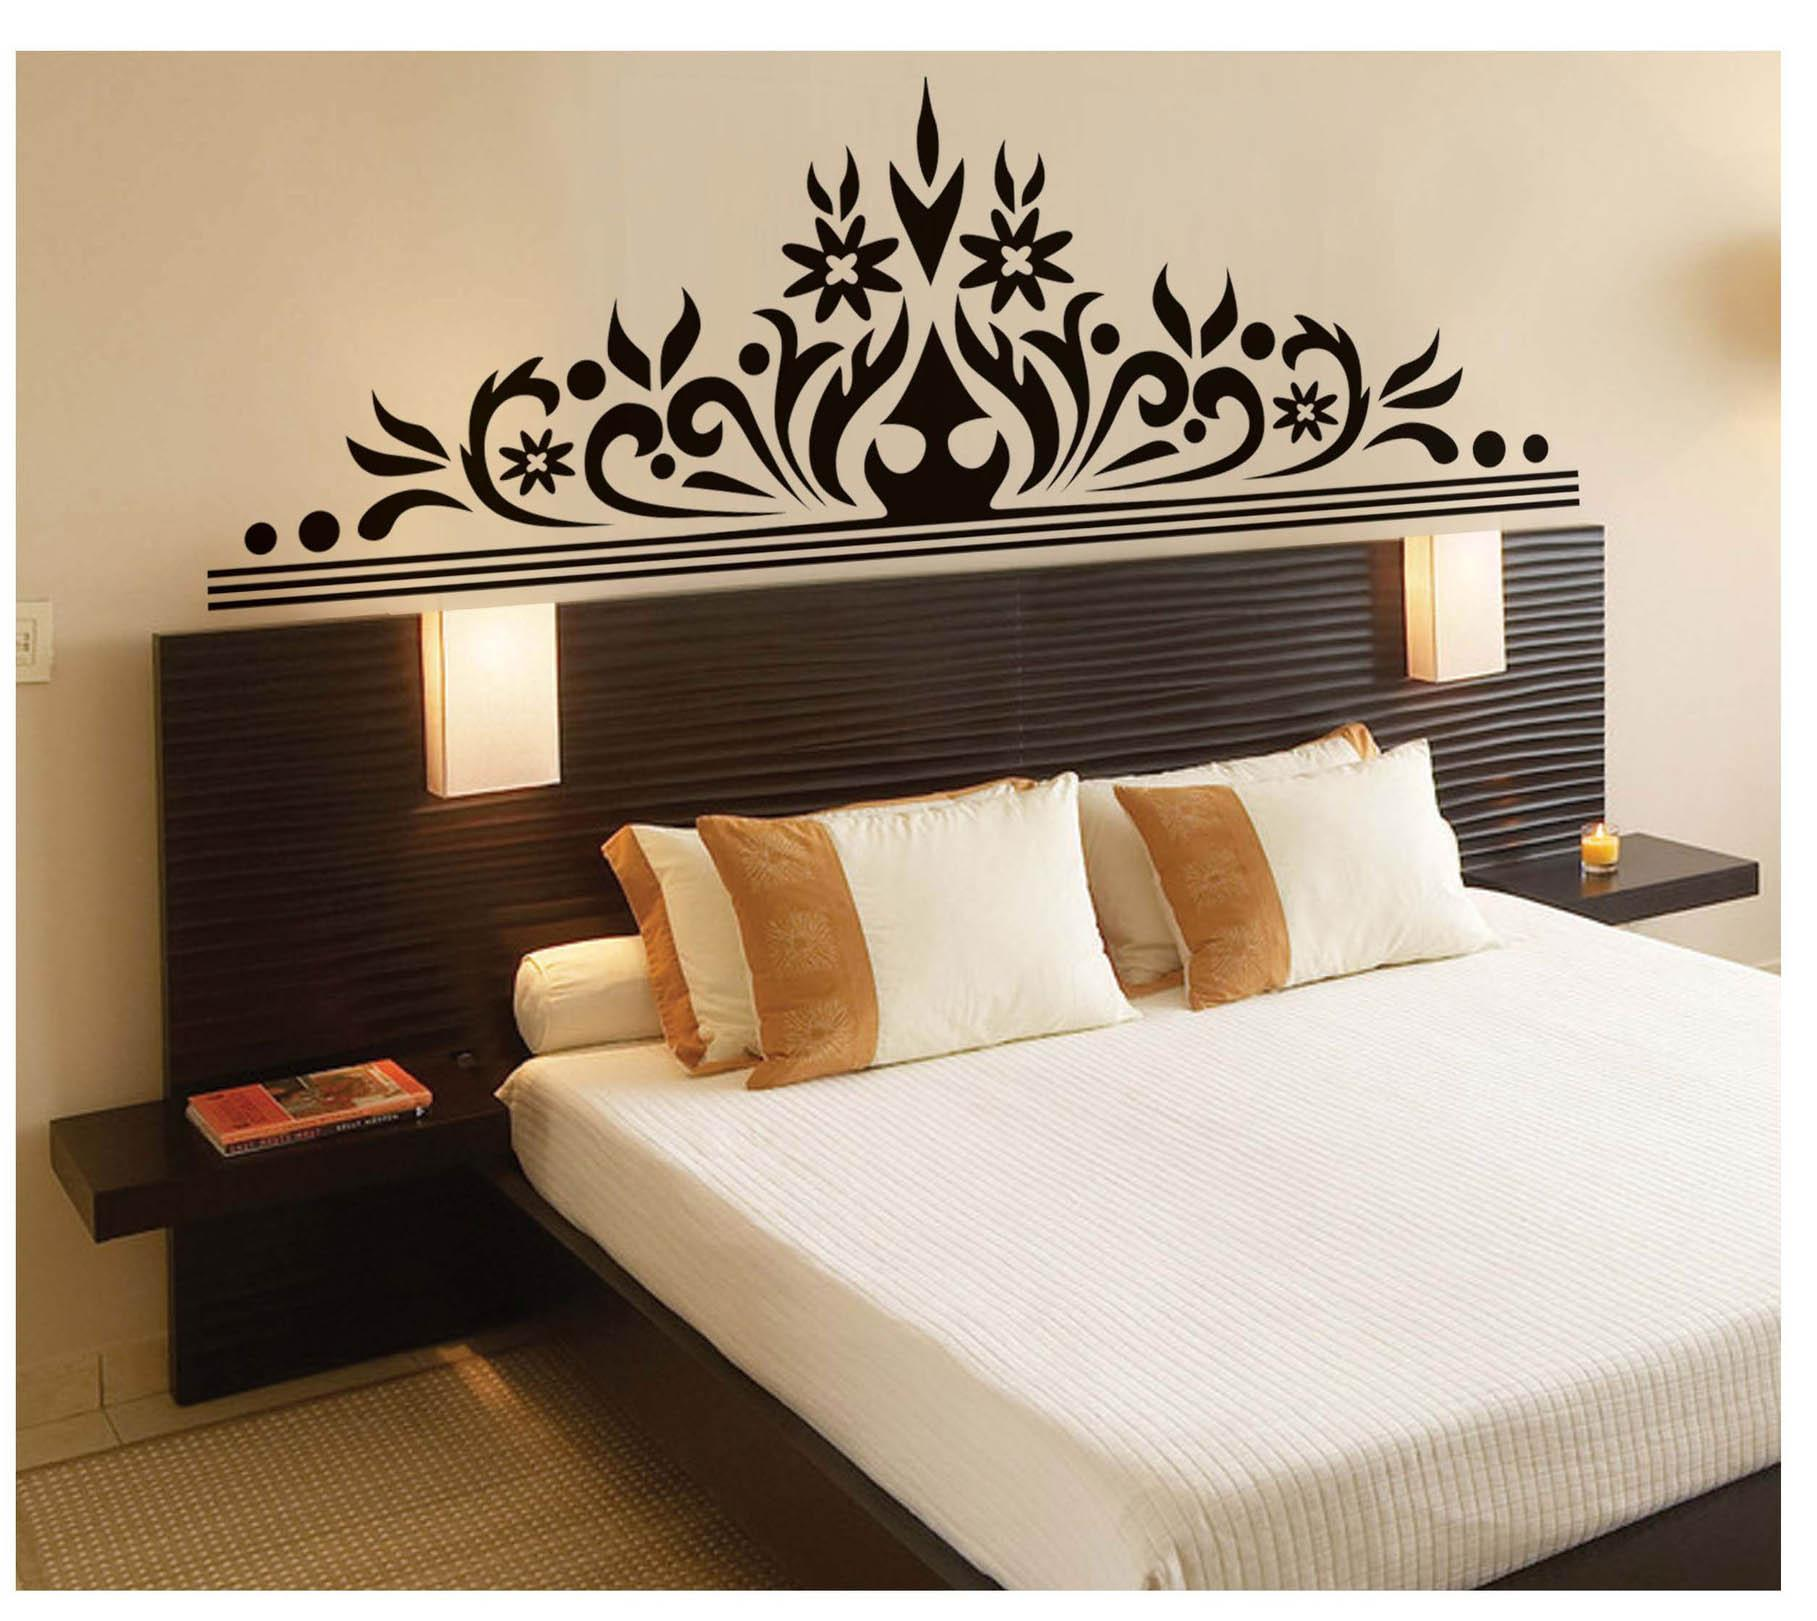 Bedroom Wall Art Decal Sticker Headboard Wall Decoration ...